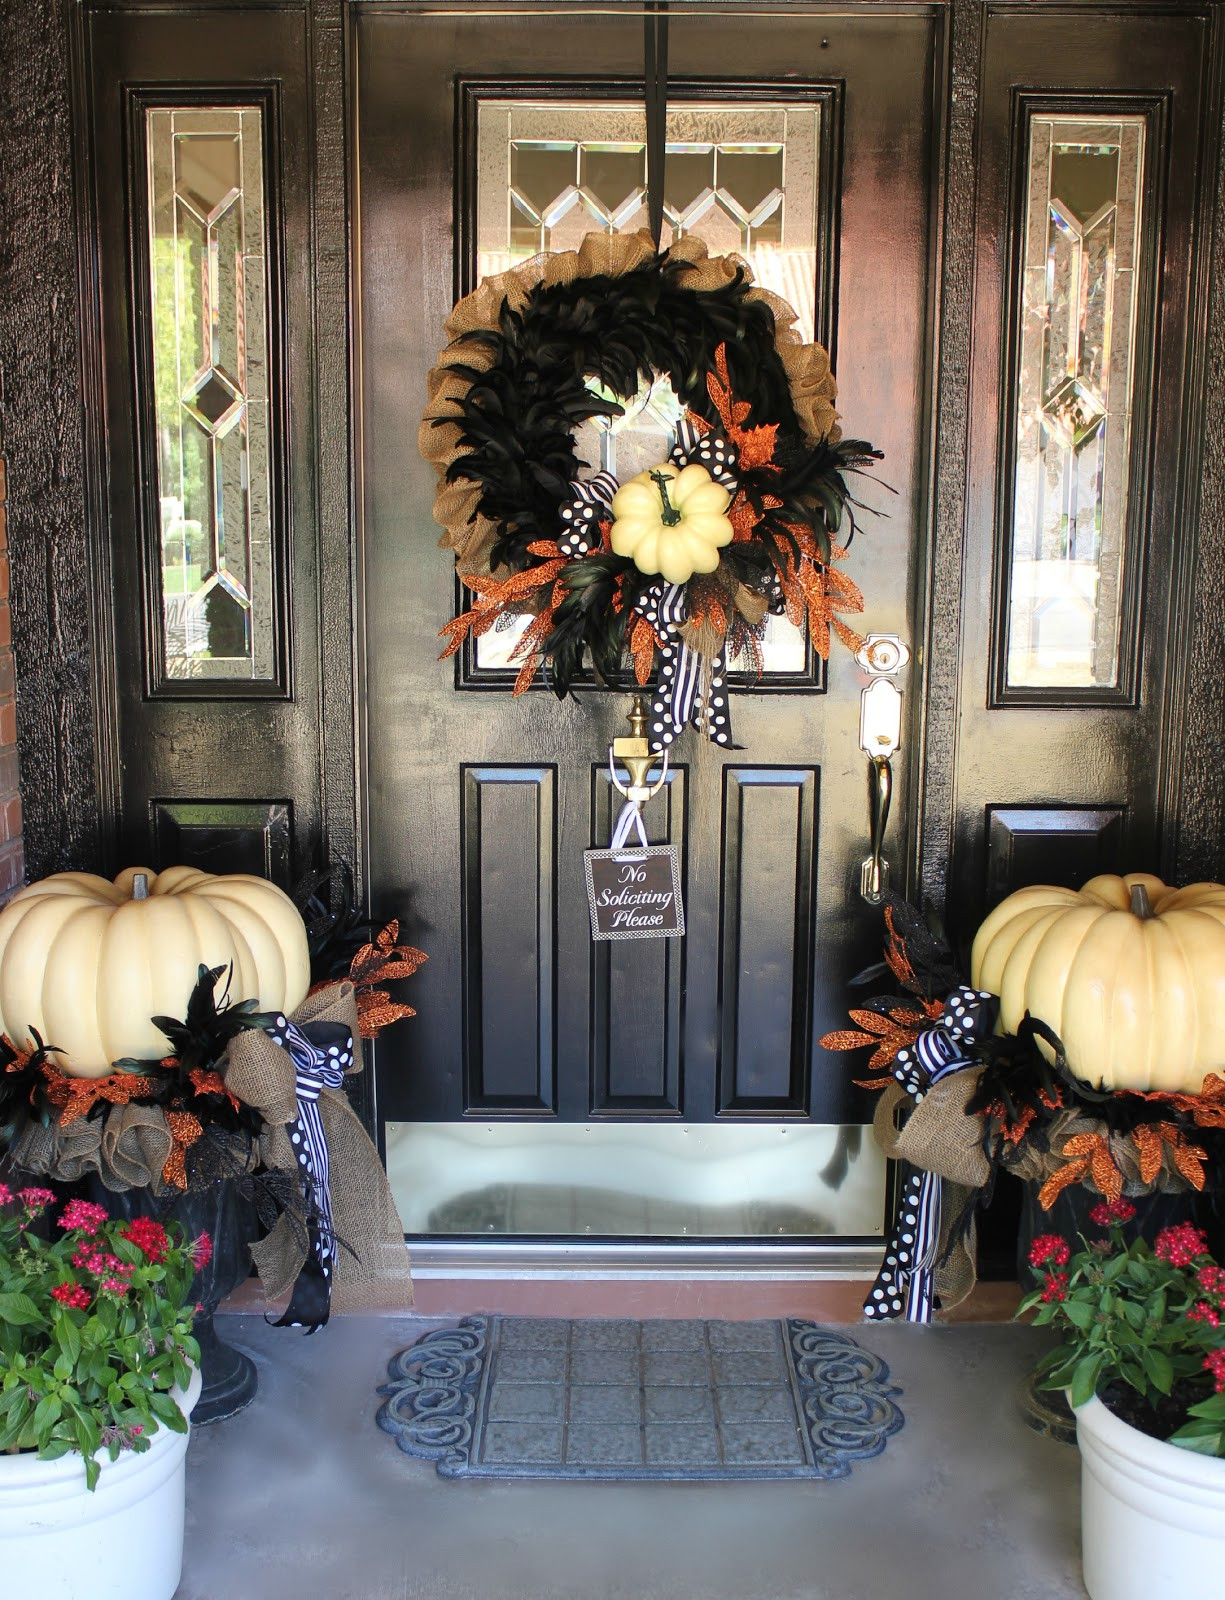 Porch Decorations For Halloween  My Sister s Crazy PORCH DECORATIONS THAT EASILY